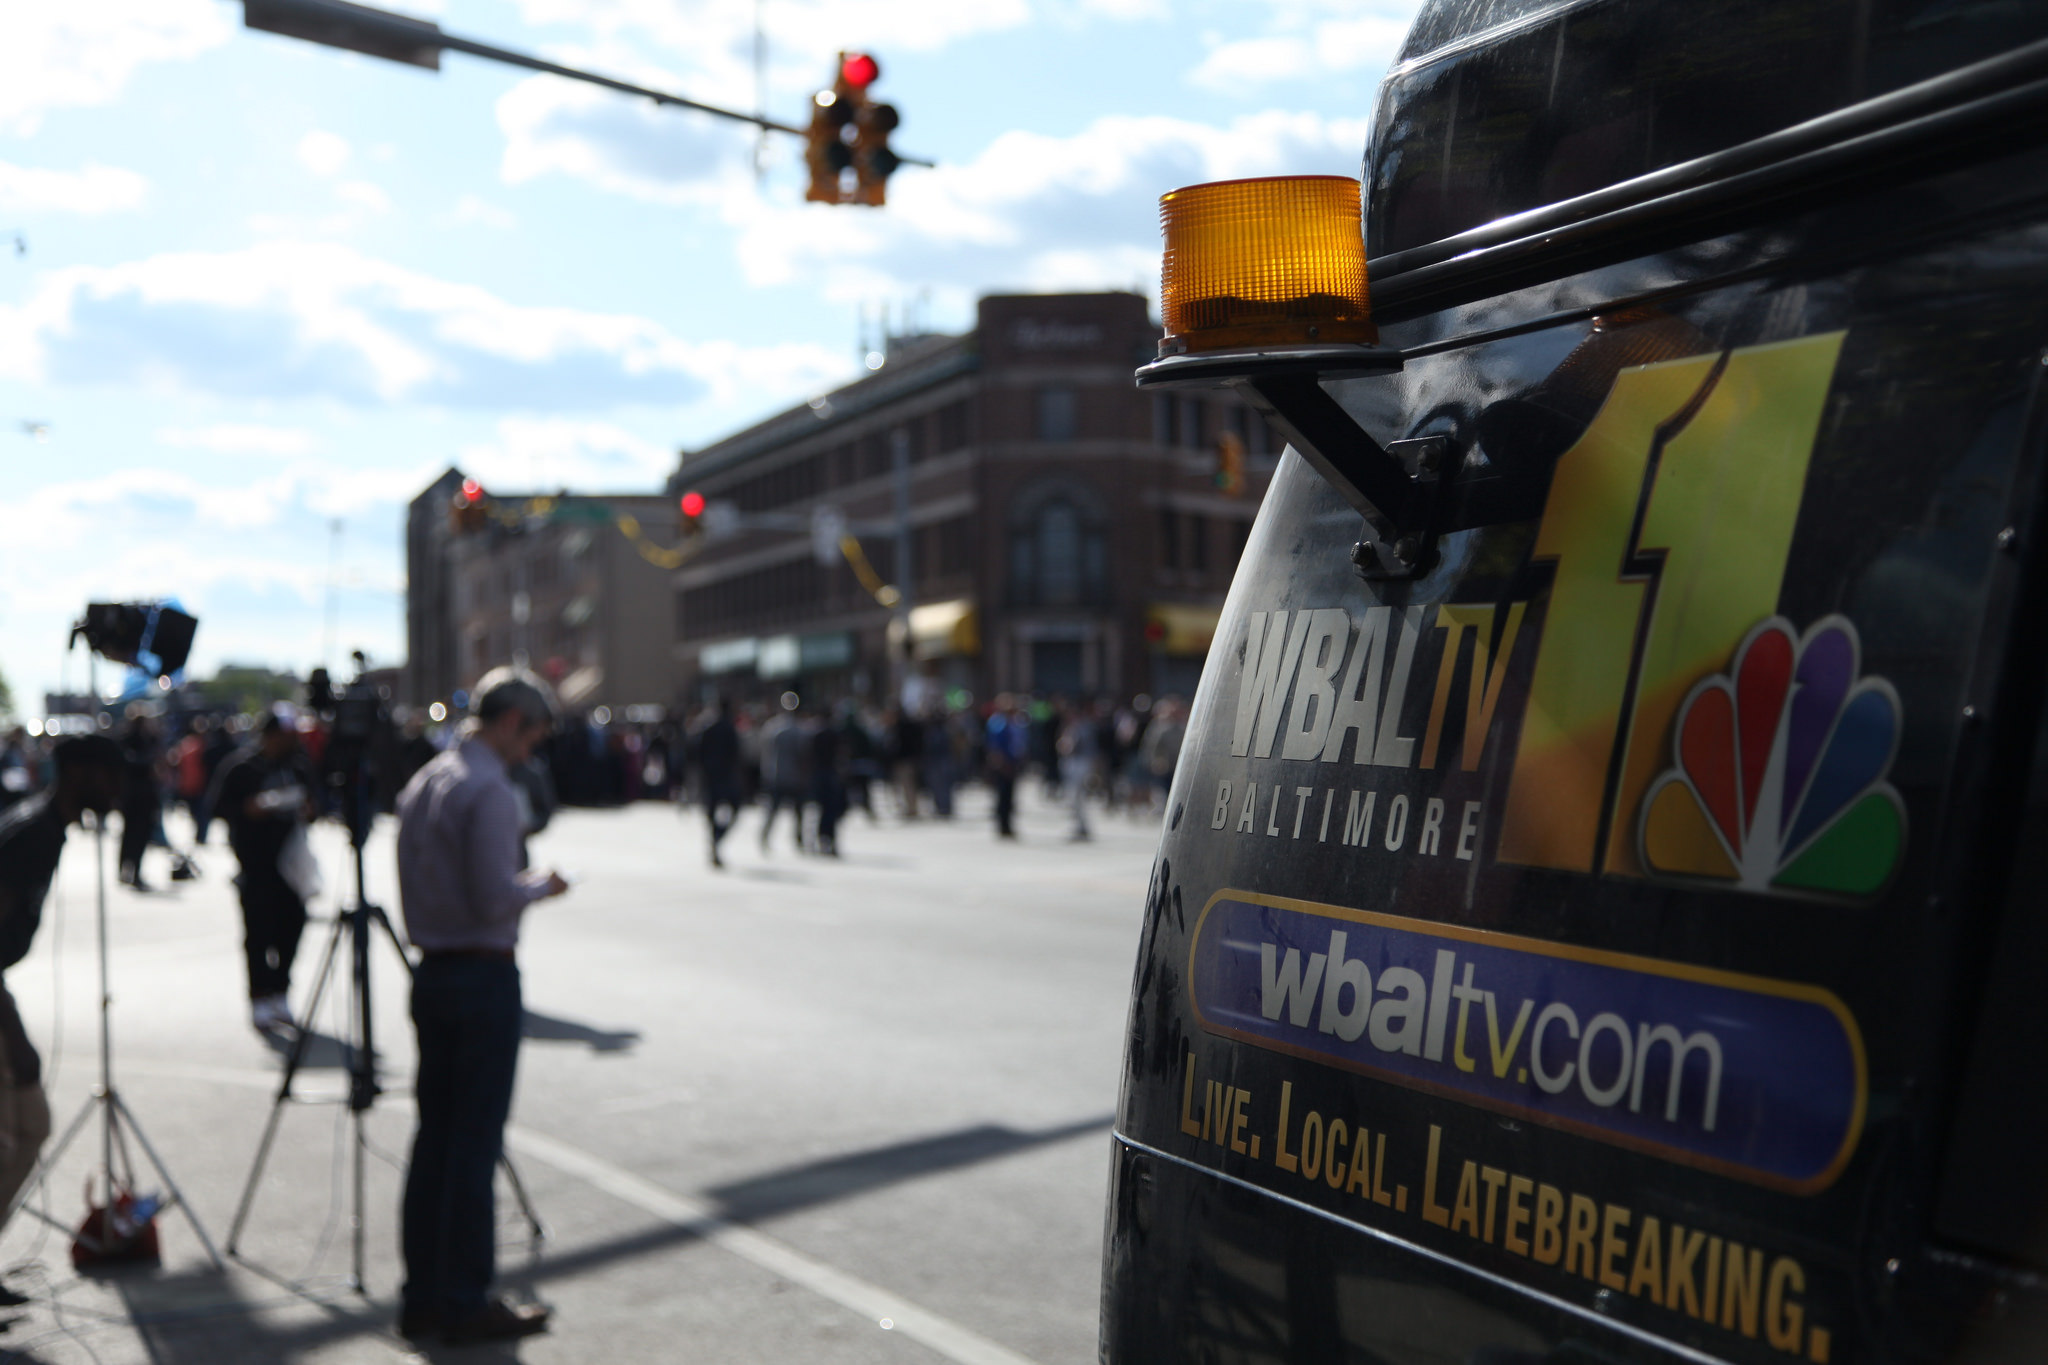 A news van near Baltimore protests over the death of Freddie Gray. By Arash Azizzada.